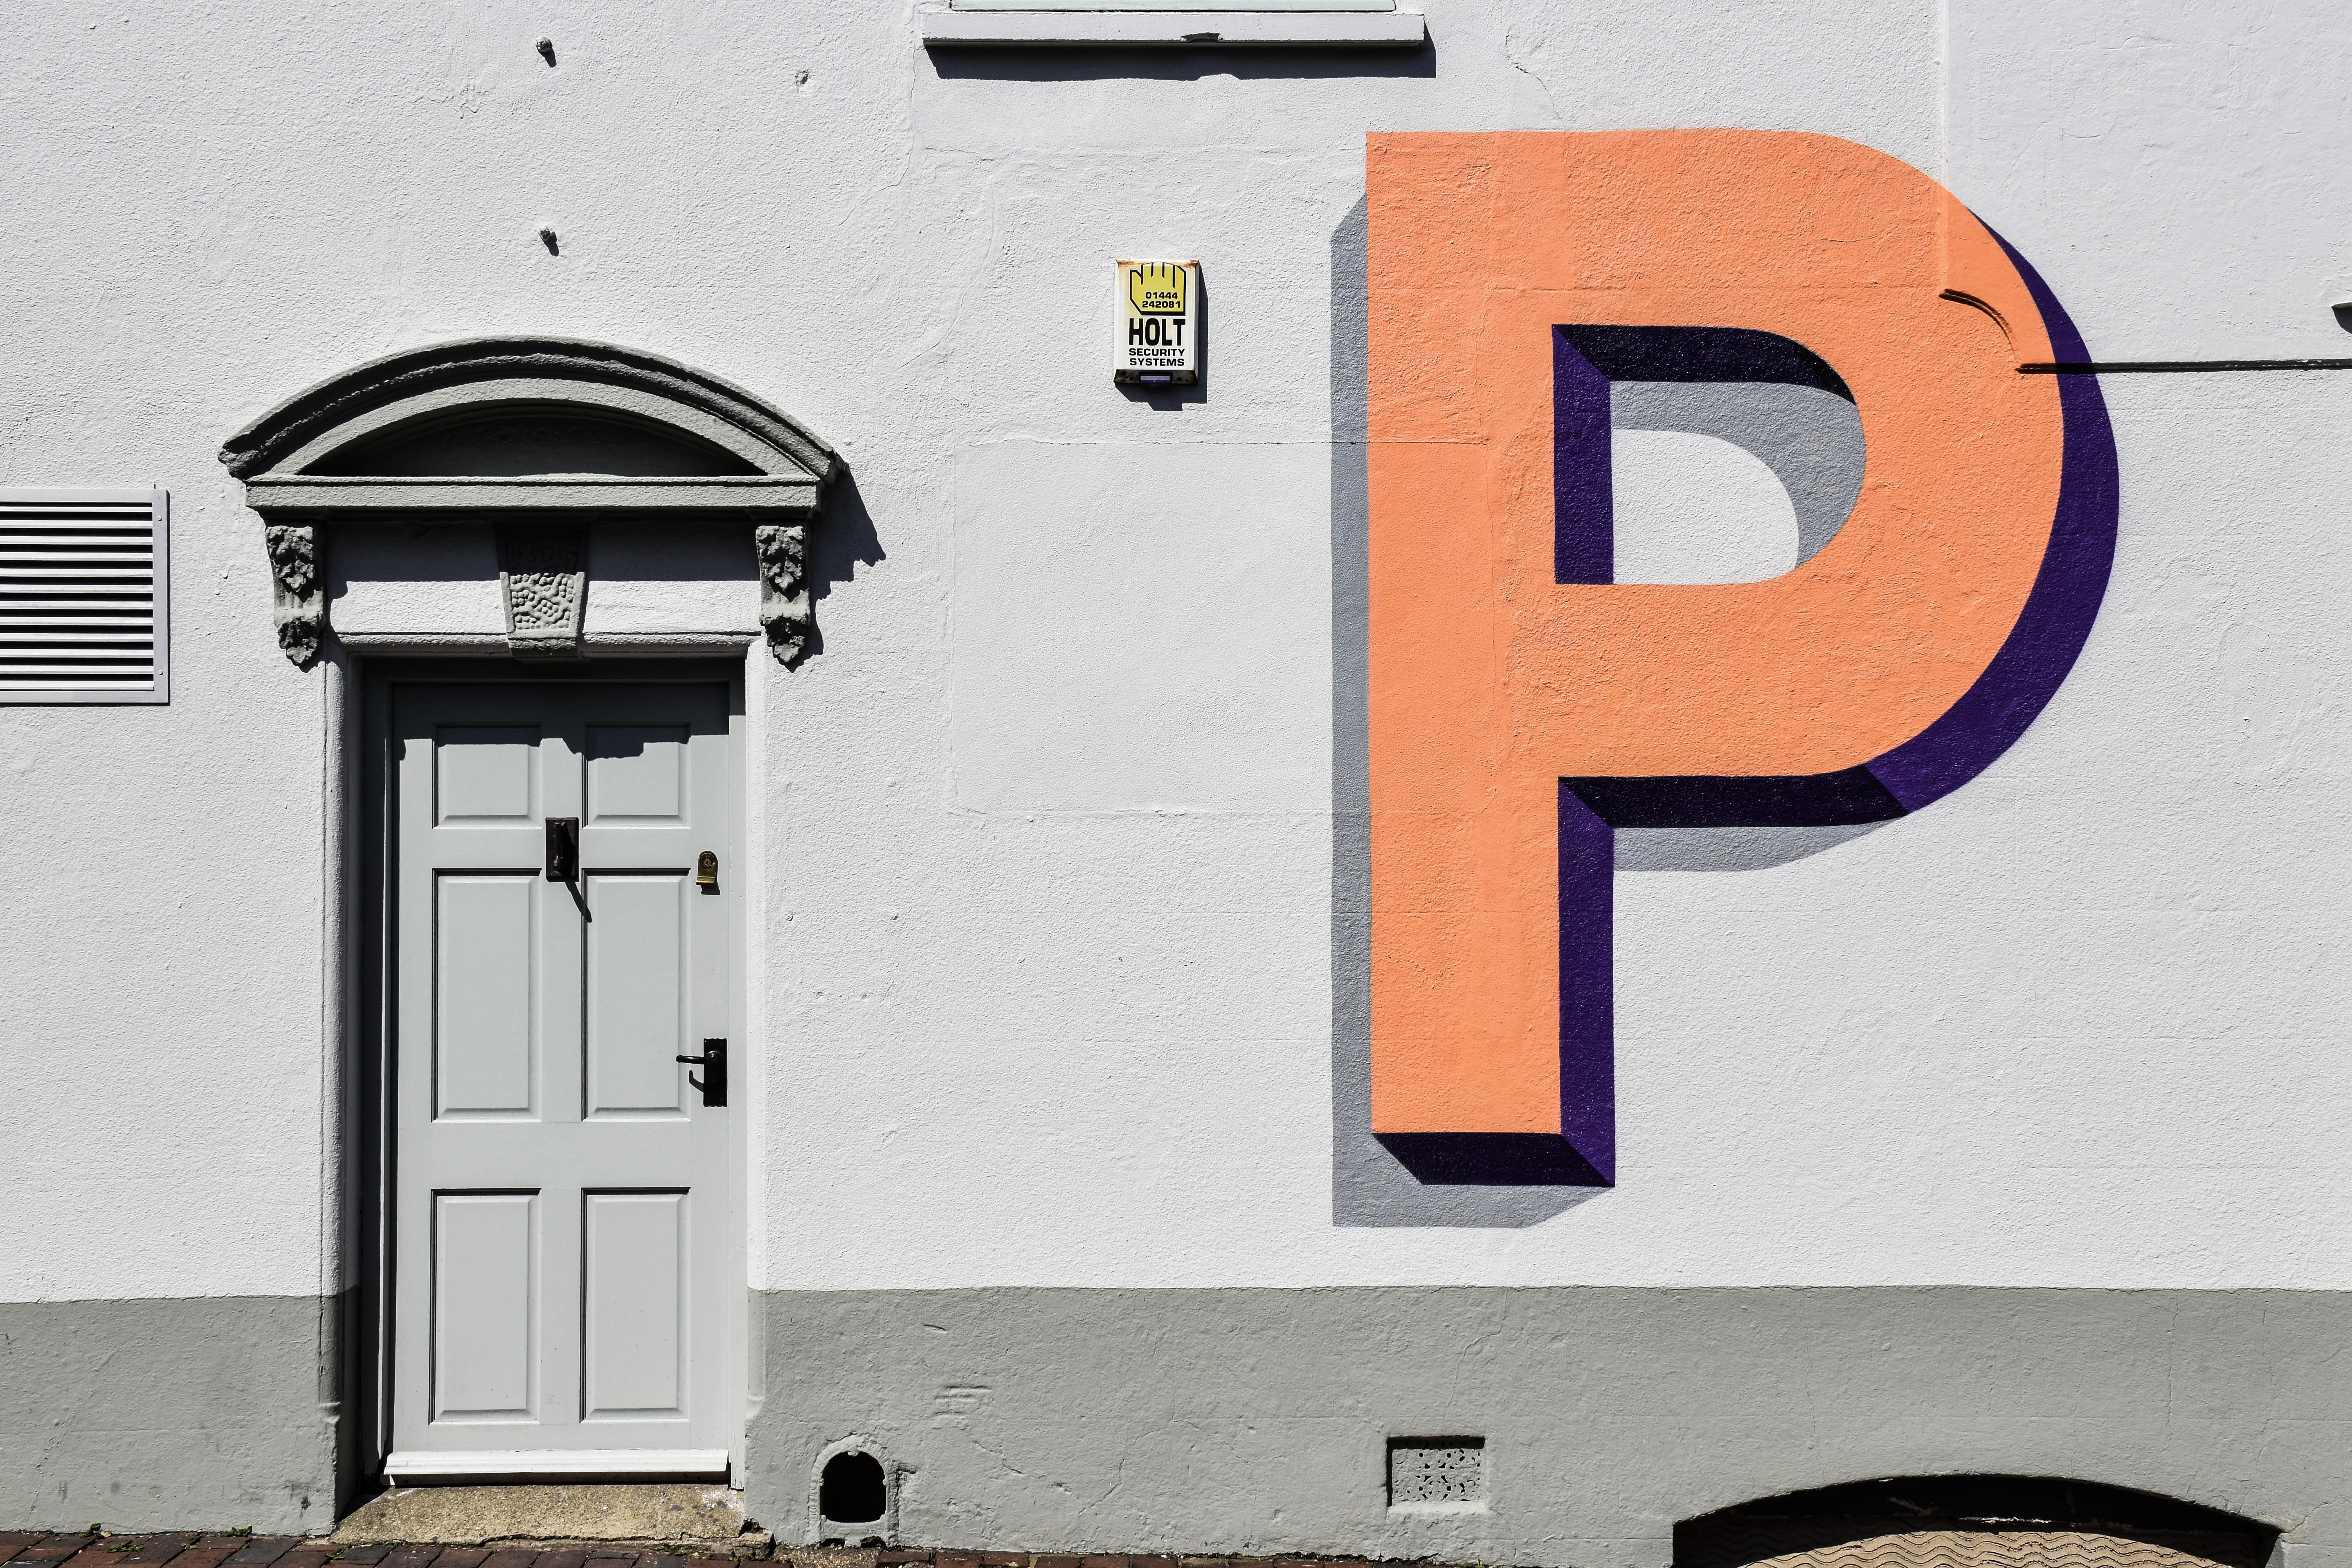 Letter P on a wall next to a door